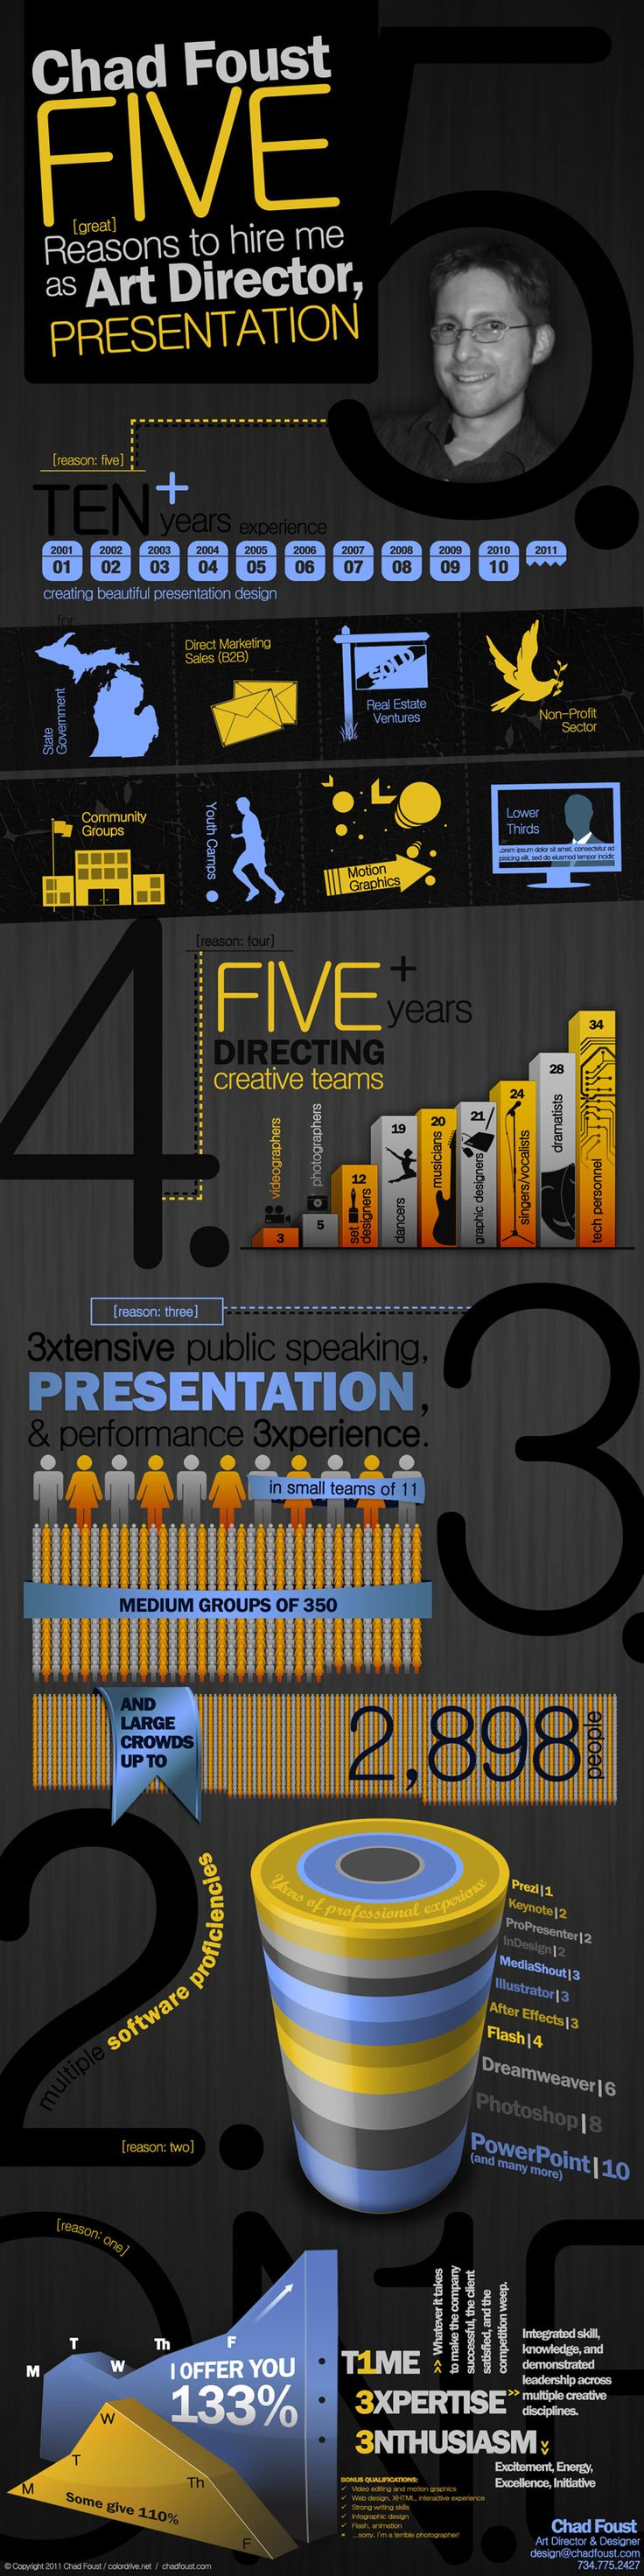 This infographic provides information for why to hire chad for Jobs art director dusseldorf